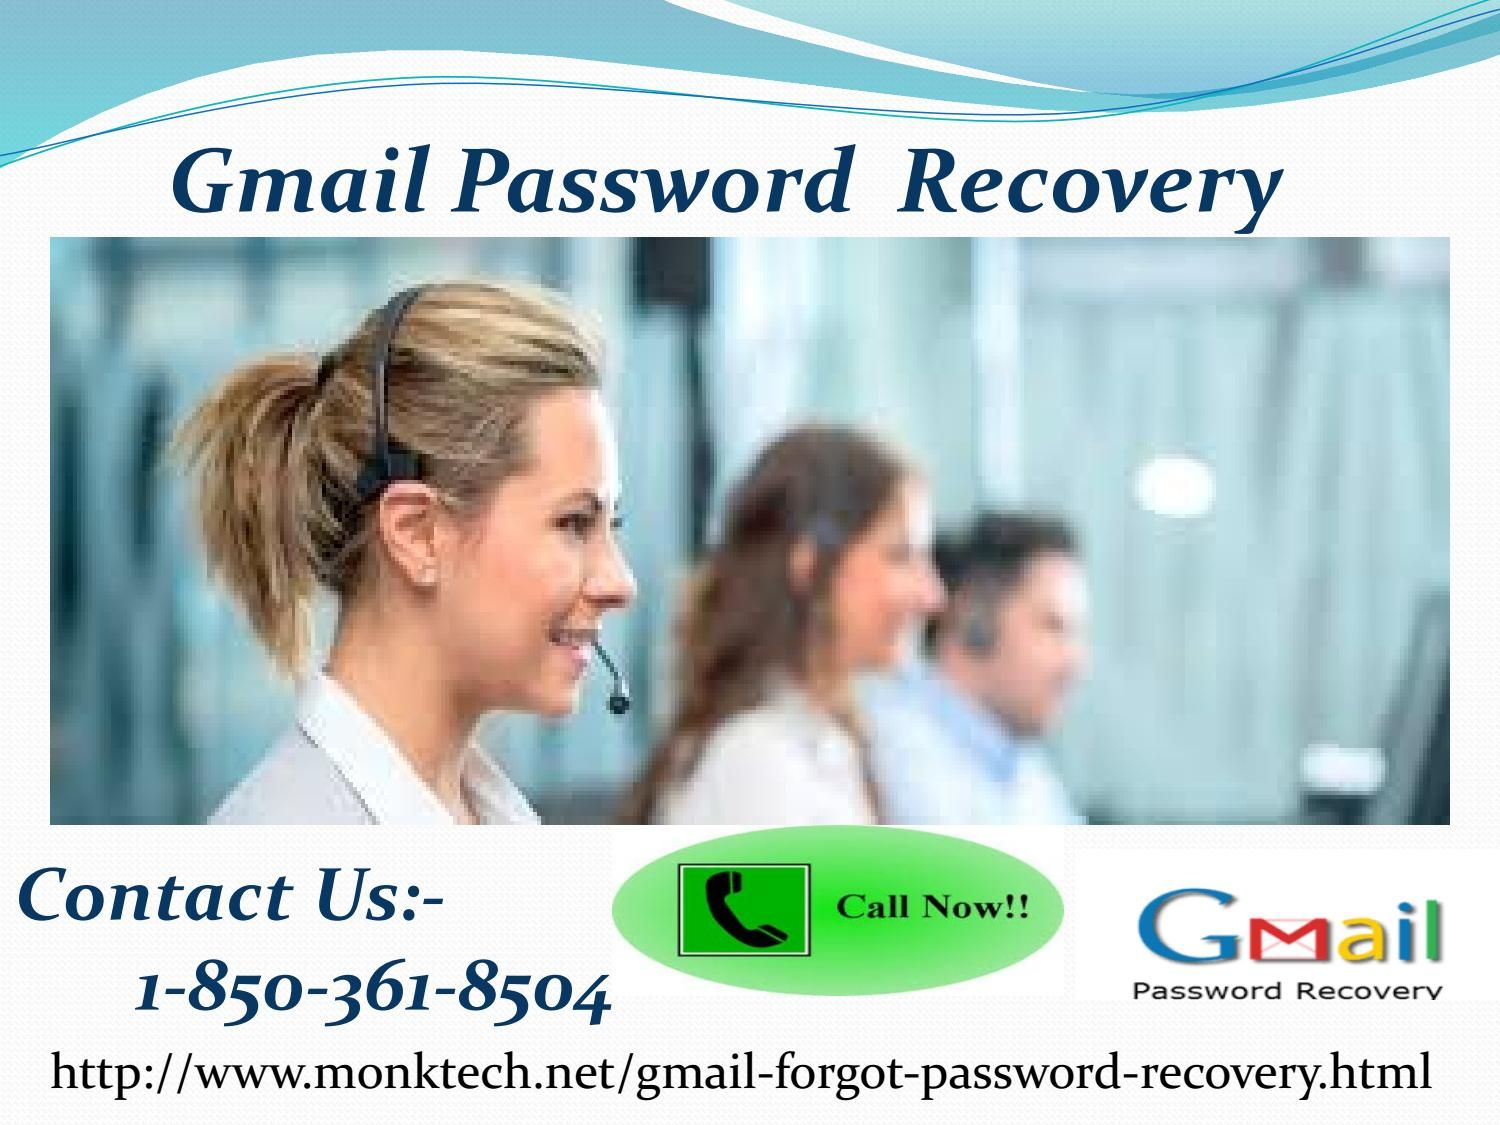 Dial 1-850-361-8504 to become more acquainted with about our Gmail Password Recovery word recuperation group in the accompanying way:- •Experts are only one stage far from you. •Get associated with us in a matter of moments. •Get solid administrations in a matter of seconds. http://www.monktech.net/gmail-forgot-password-recovery.html